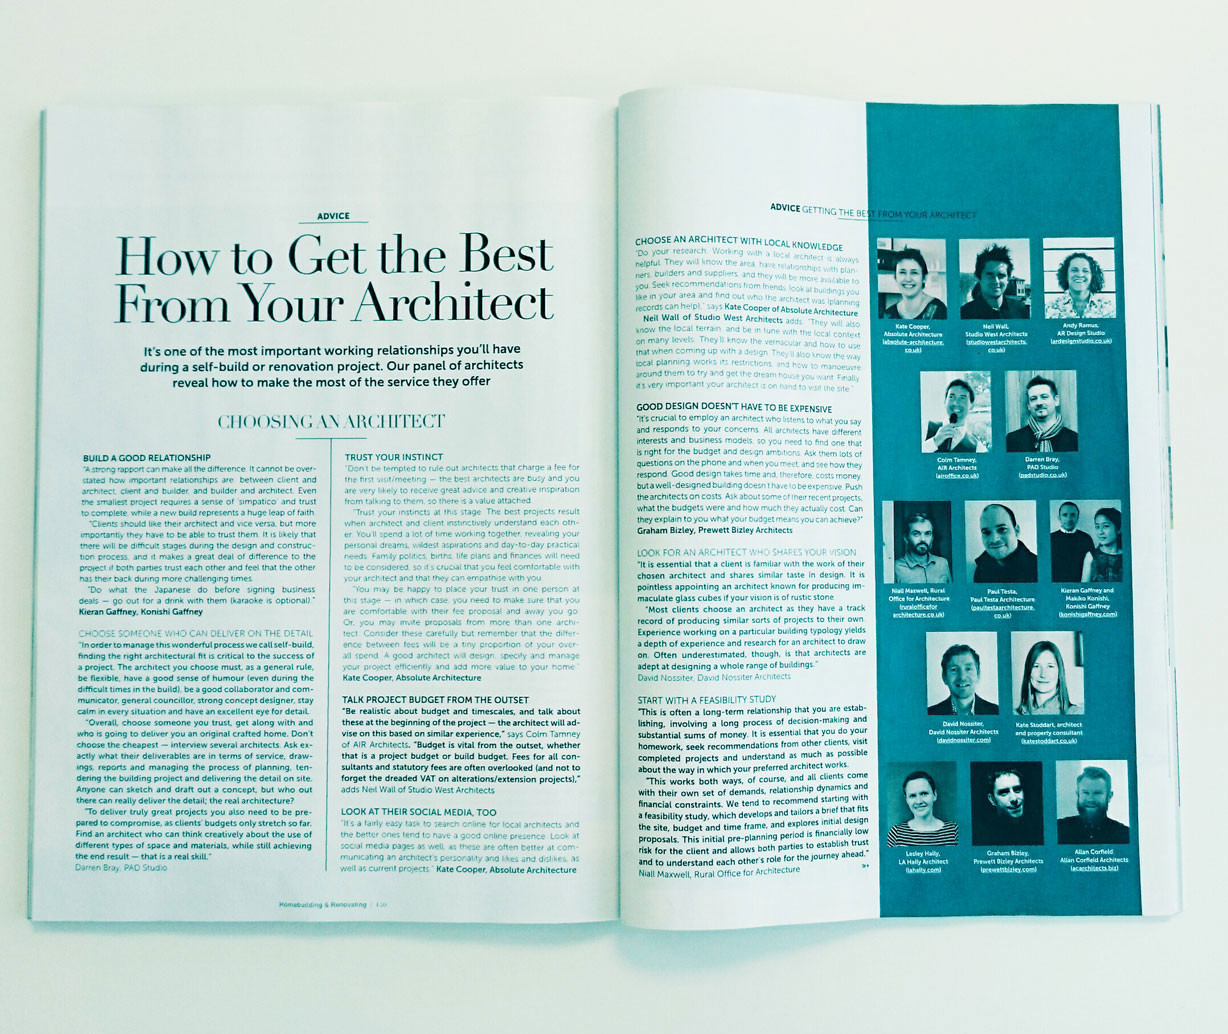 Architect Tips Article HBR Magazine